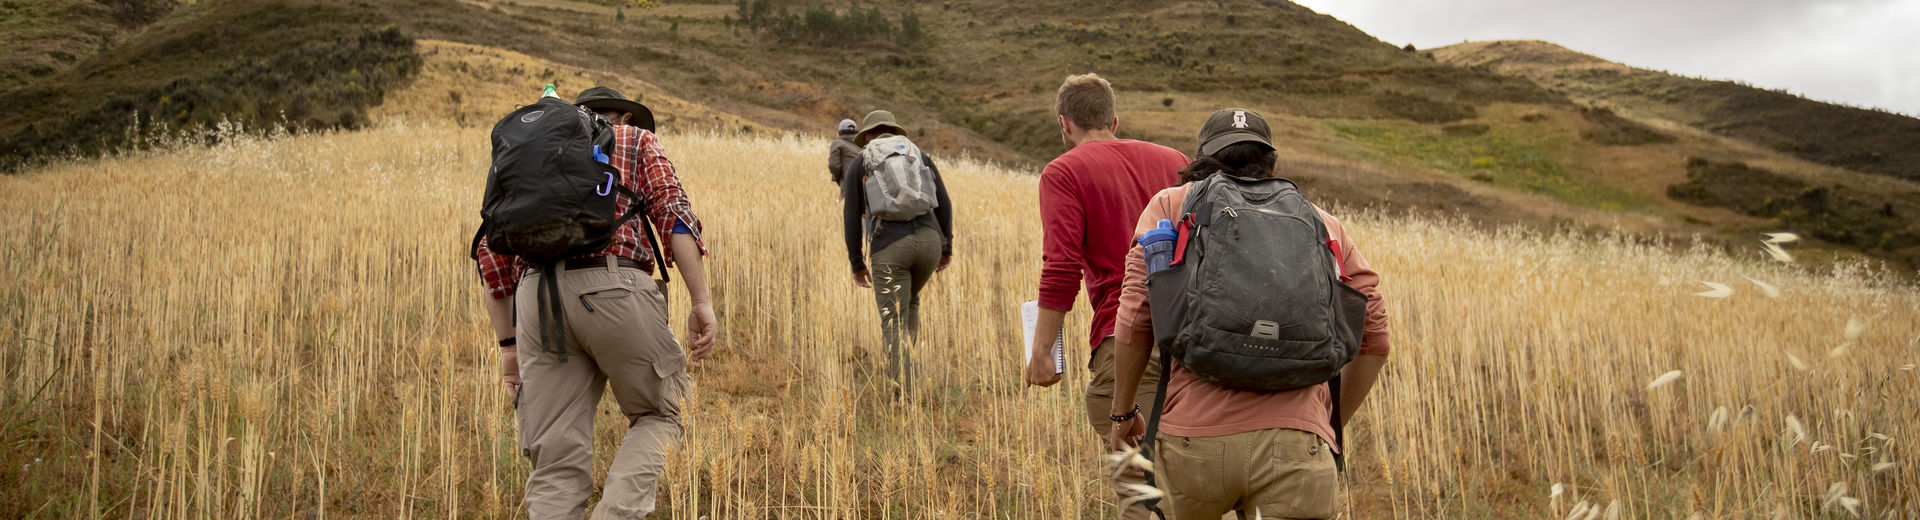 College of Liberal Arts students hiking in Latin America